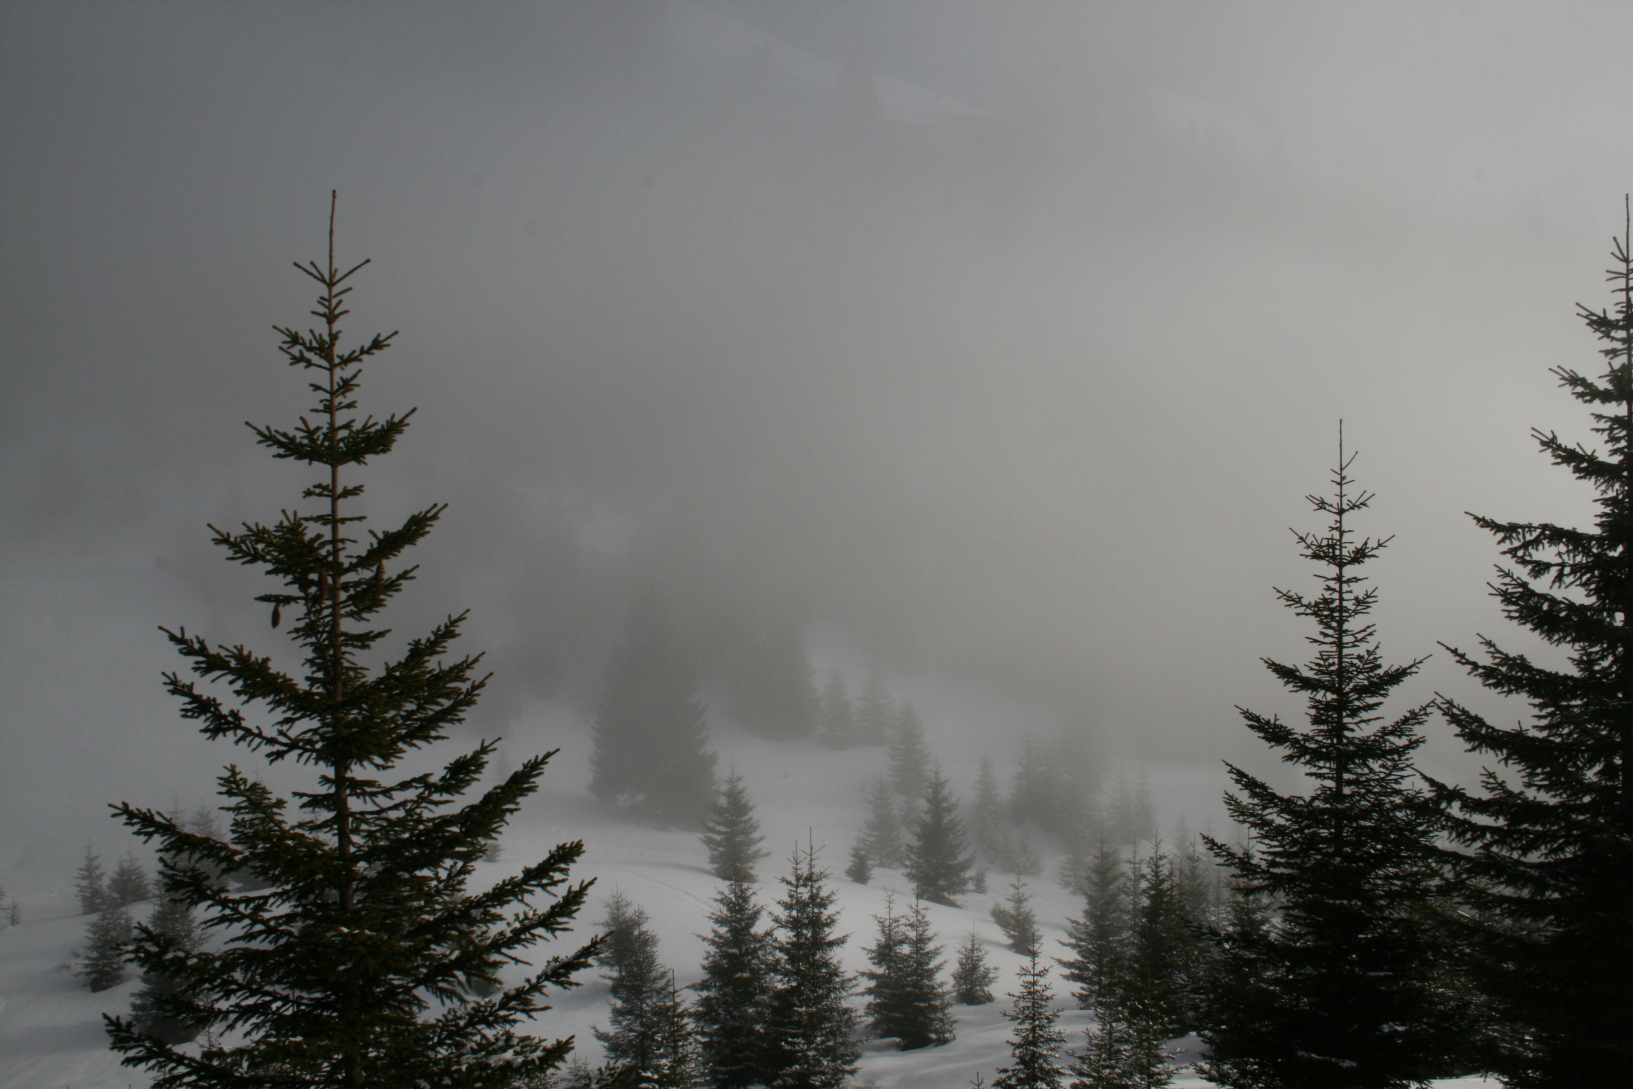 http://buettnerdavid.de/4_Tyrol-Austria%20Winter/2_Fog/13_and%20even%20more%20fog%20coming.jpg